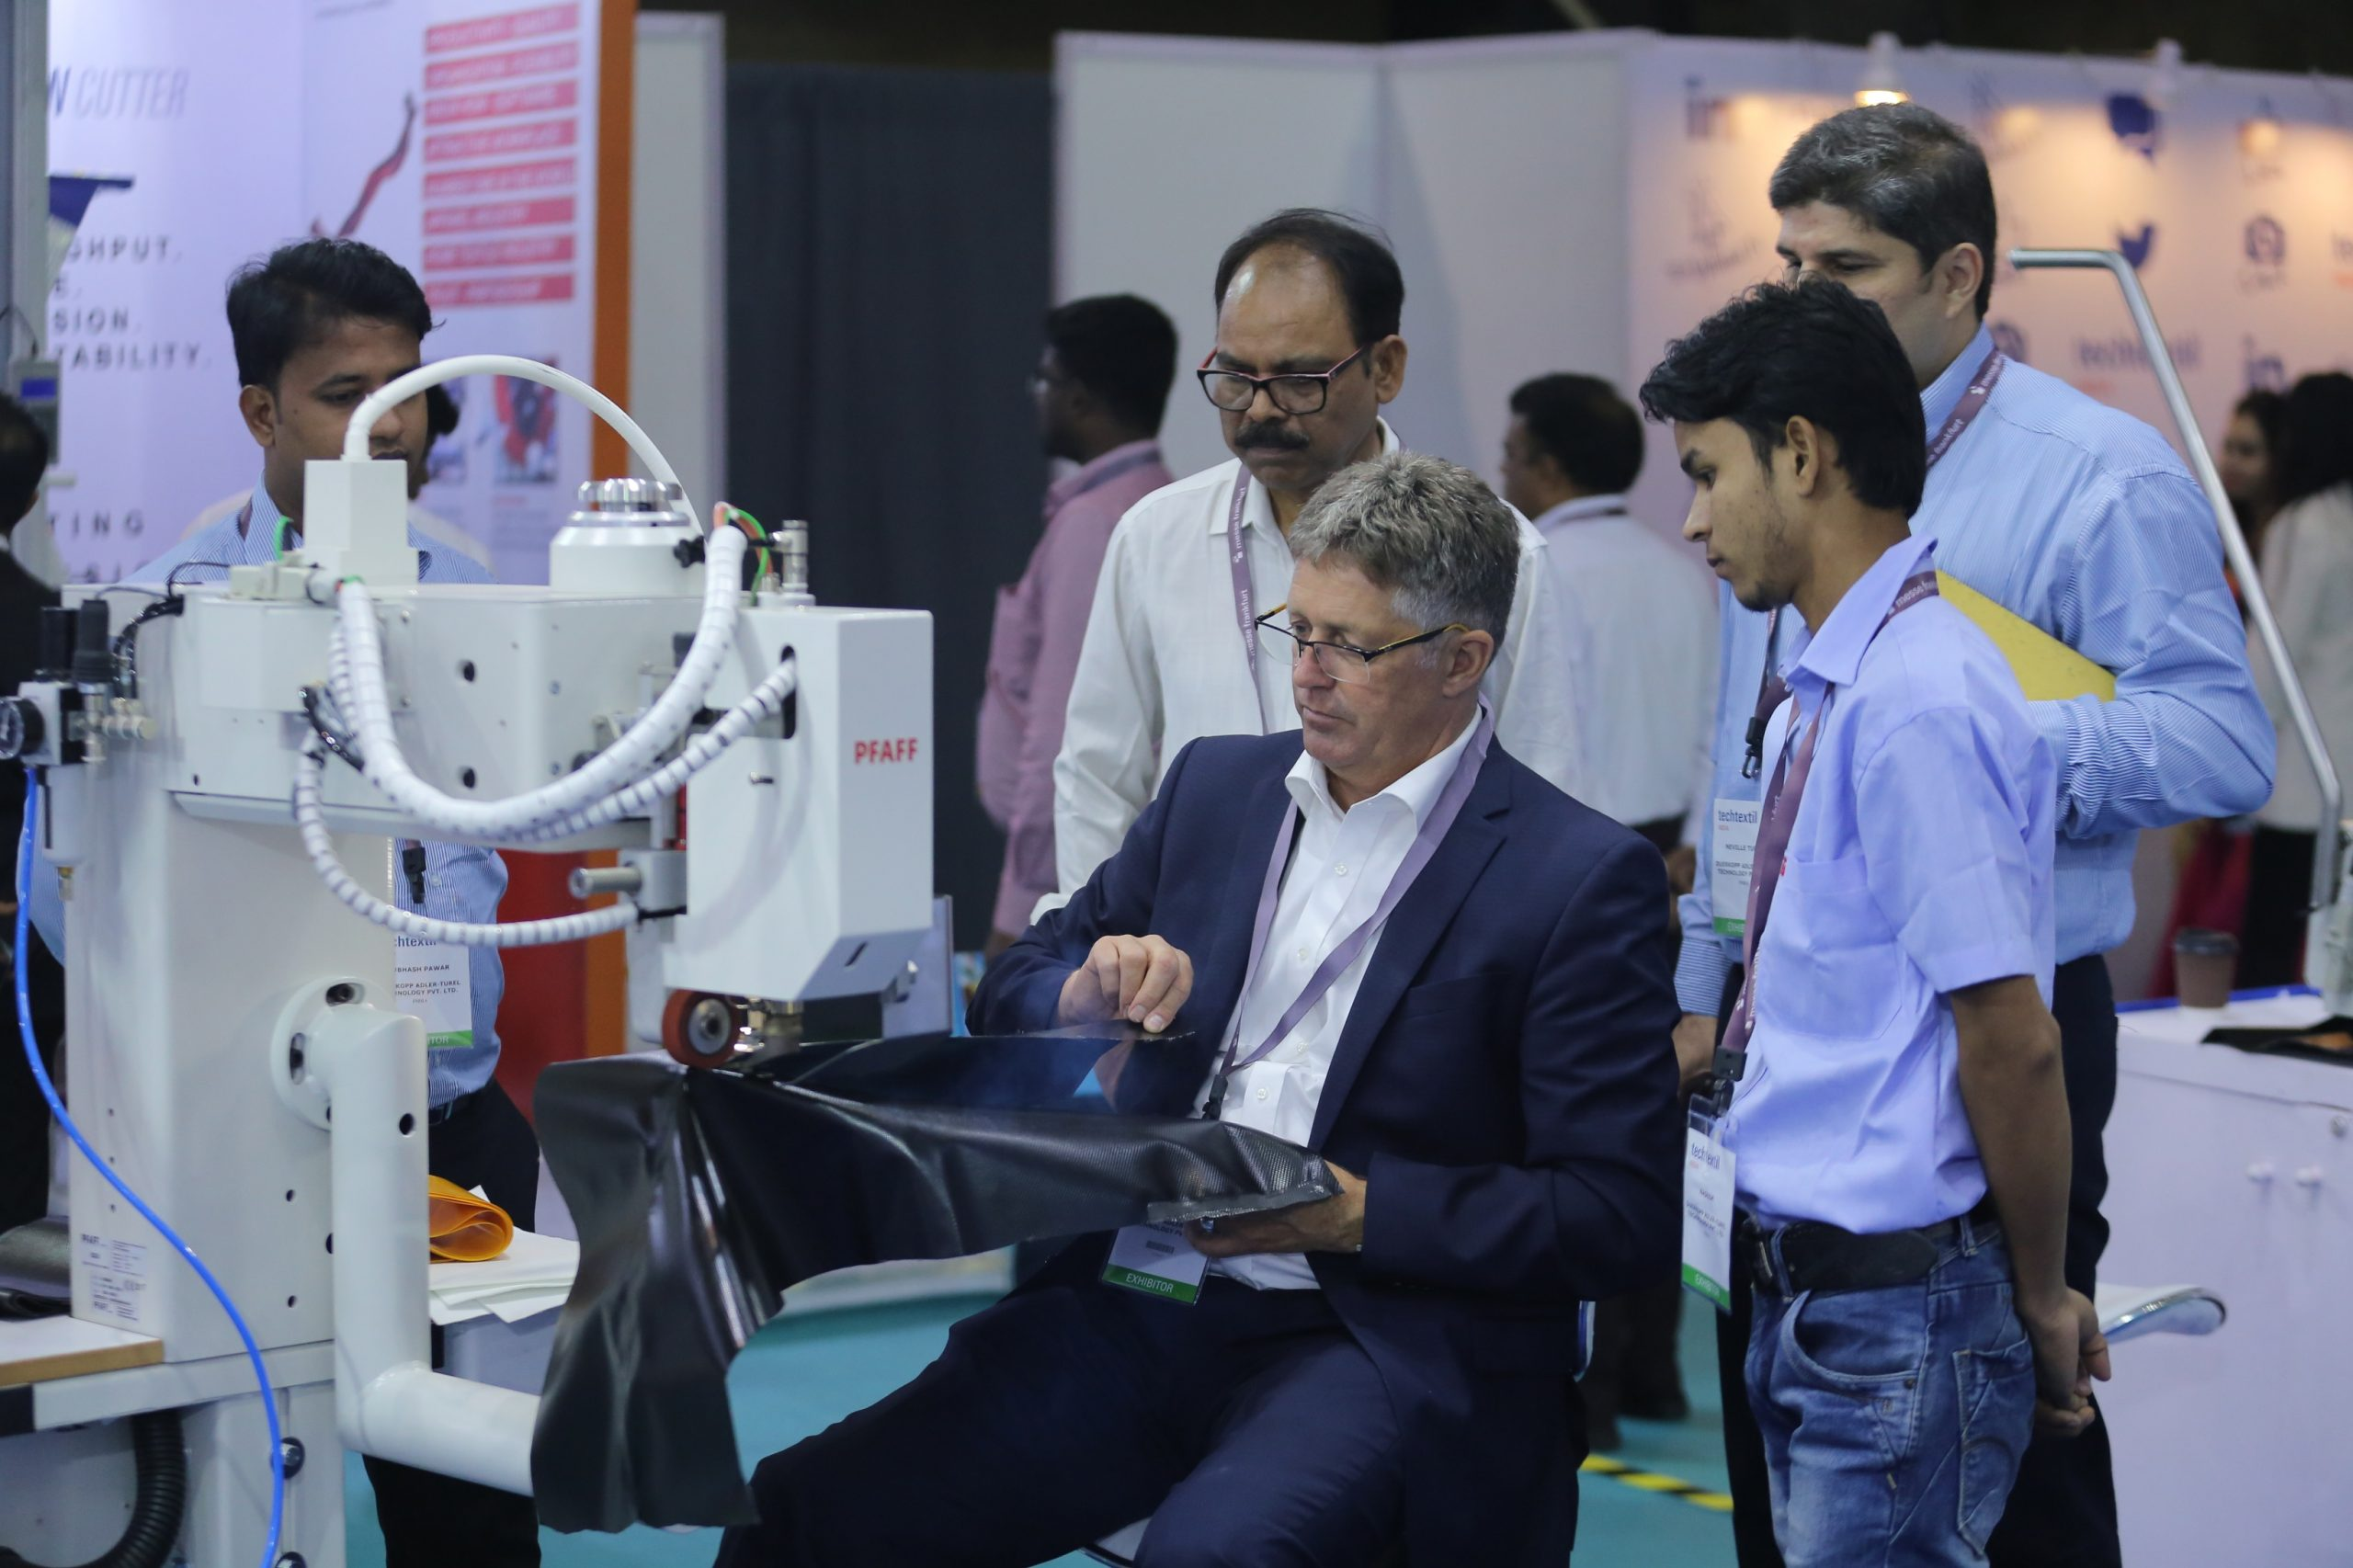 Techtextil India: First Hybrid Edition Moves To November 2021